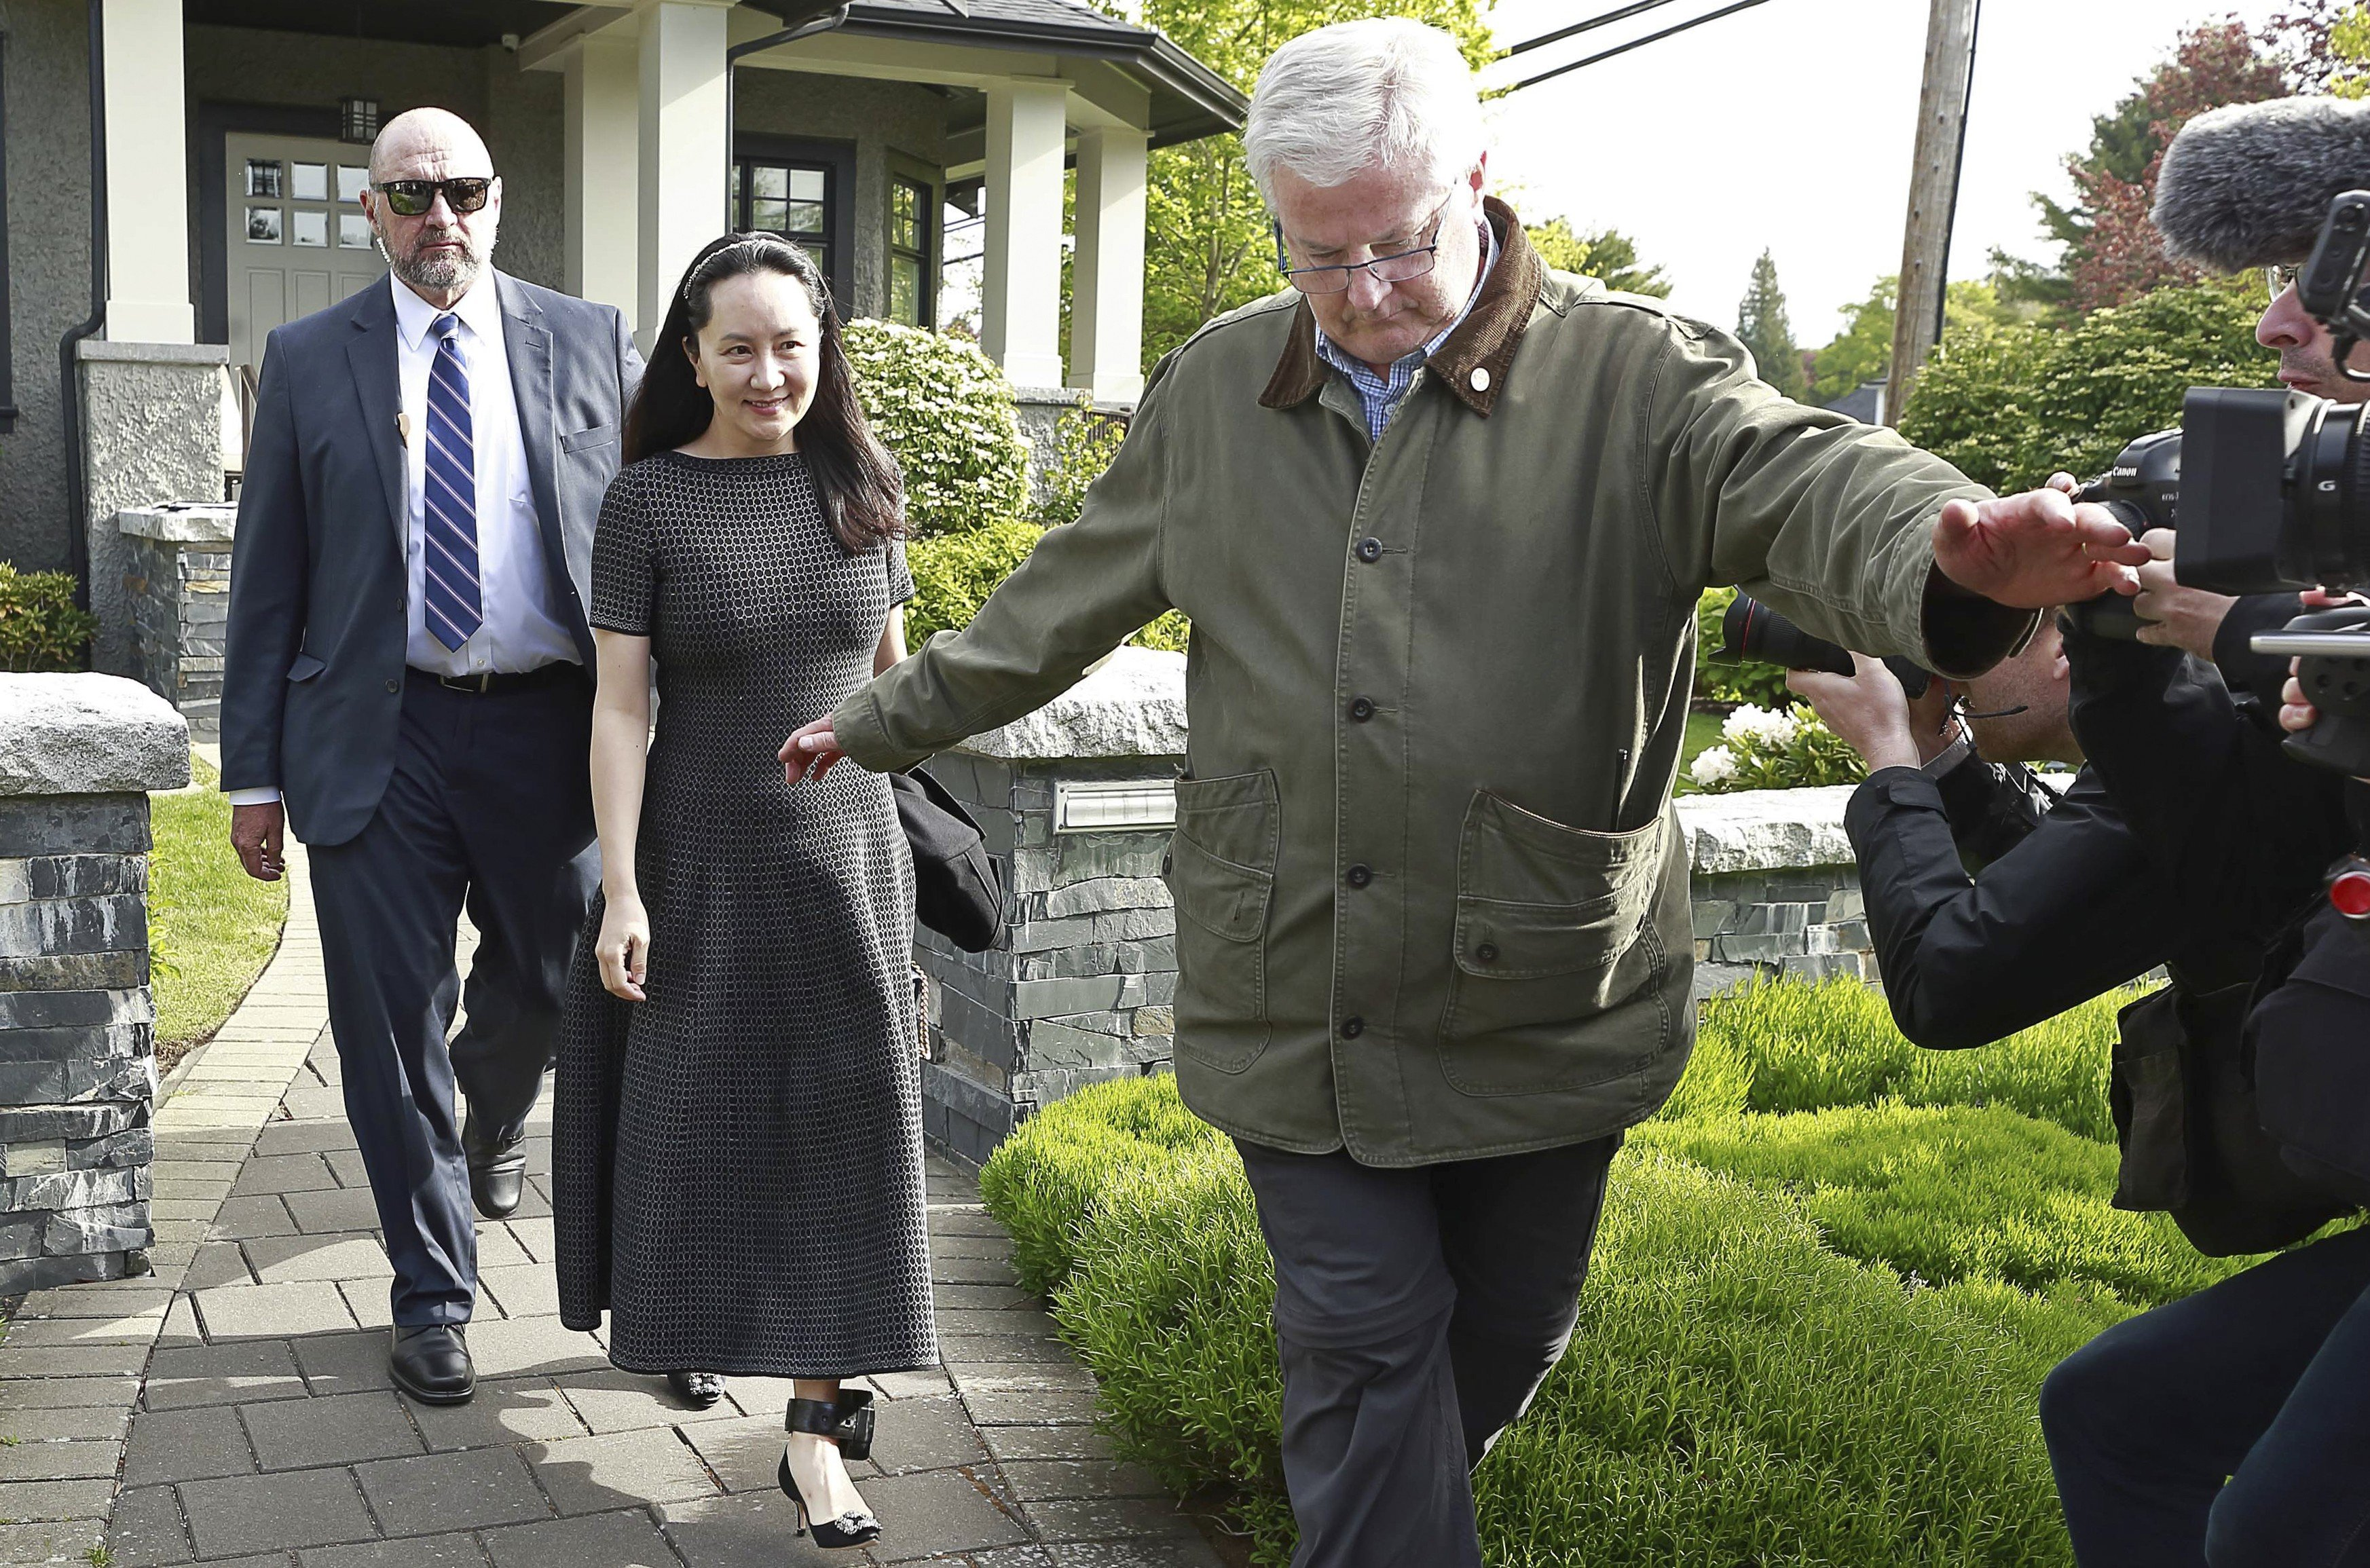 Huawei finance chief Meng Wanzhou thanks employees in rare comments since Vancouver arrest